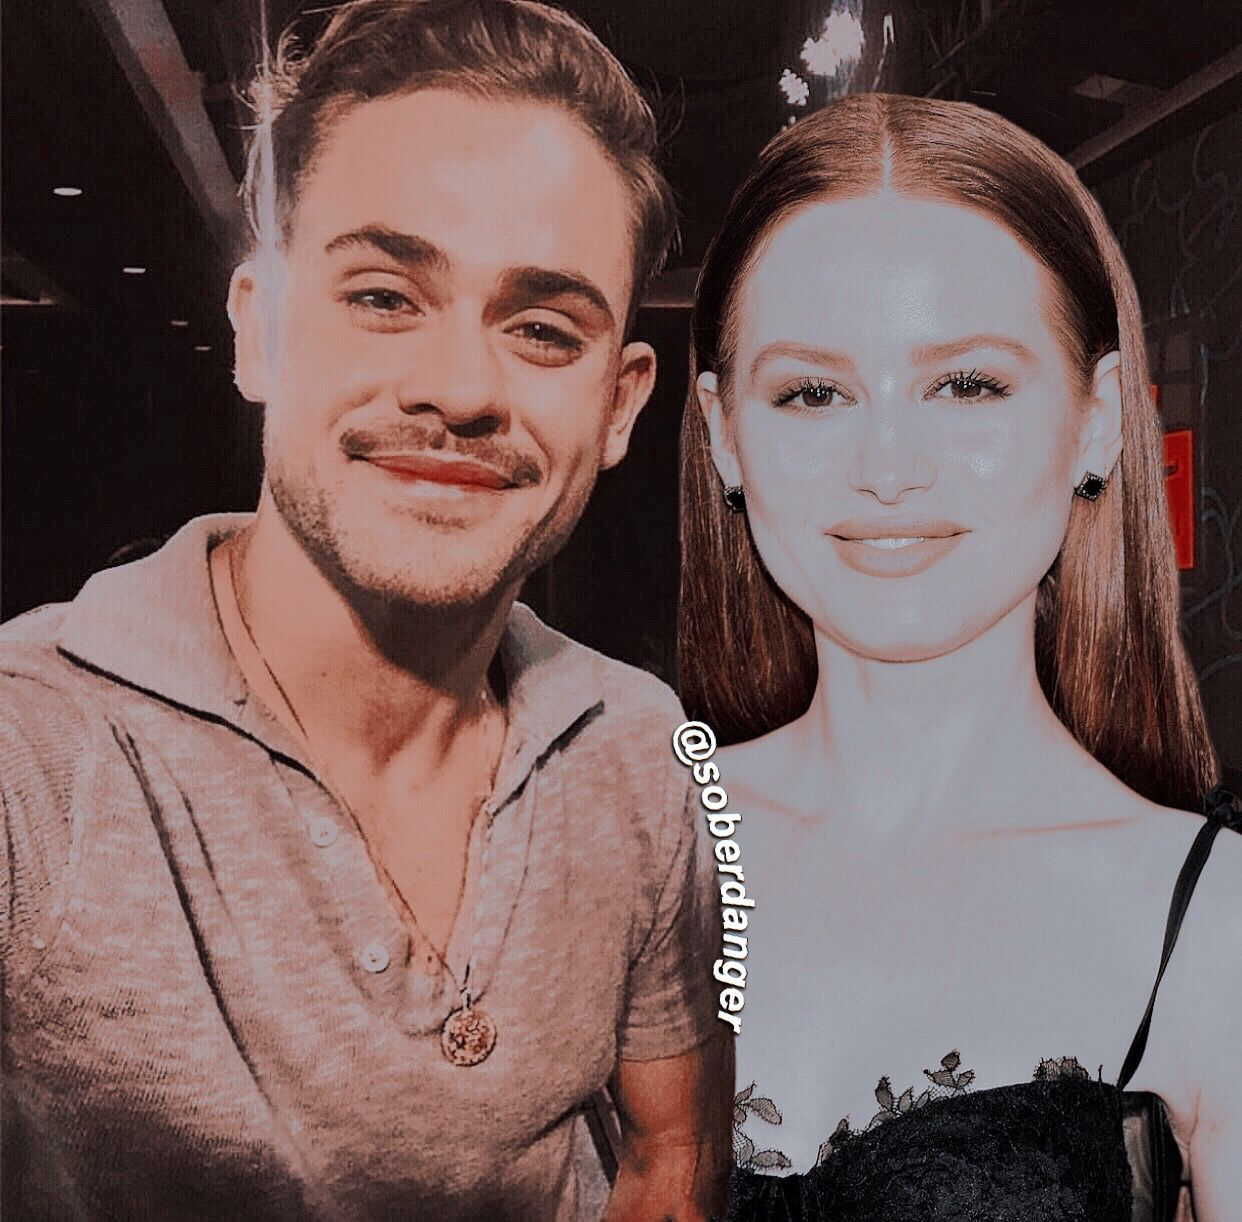 CHILLY EDITS - cheryl blossom & billy hargrove in 2019